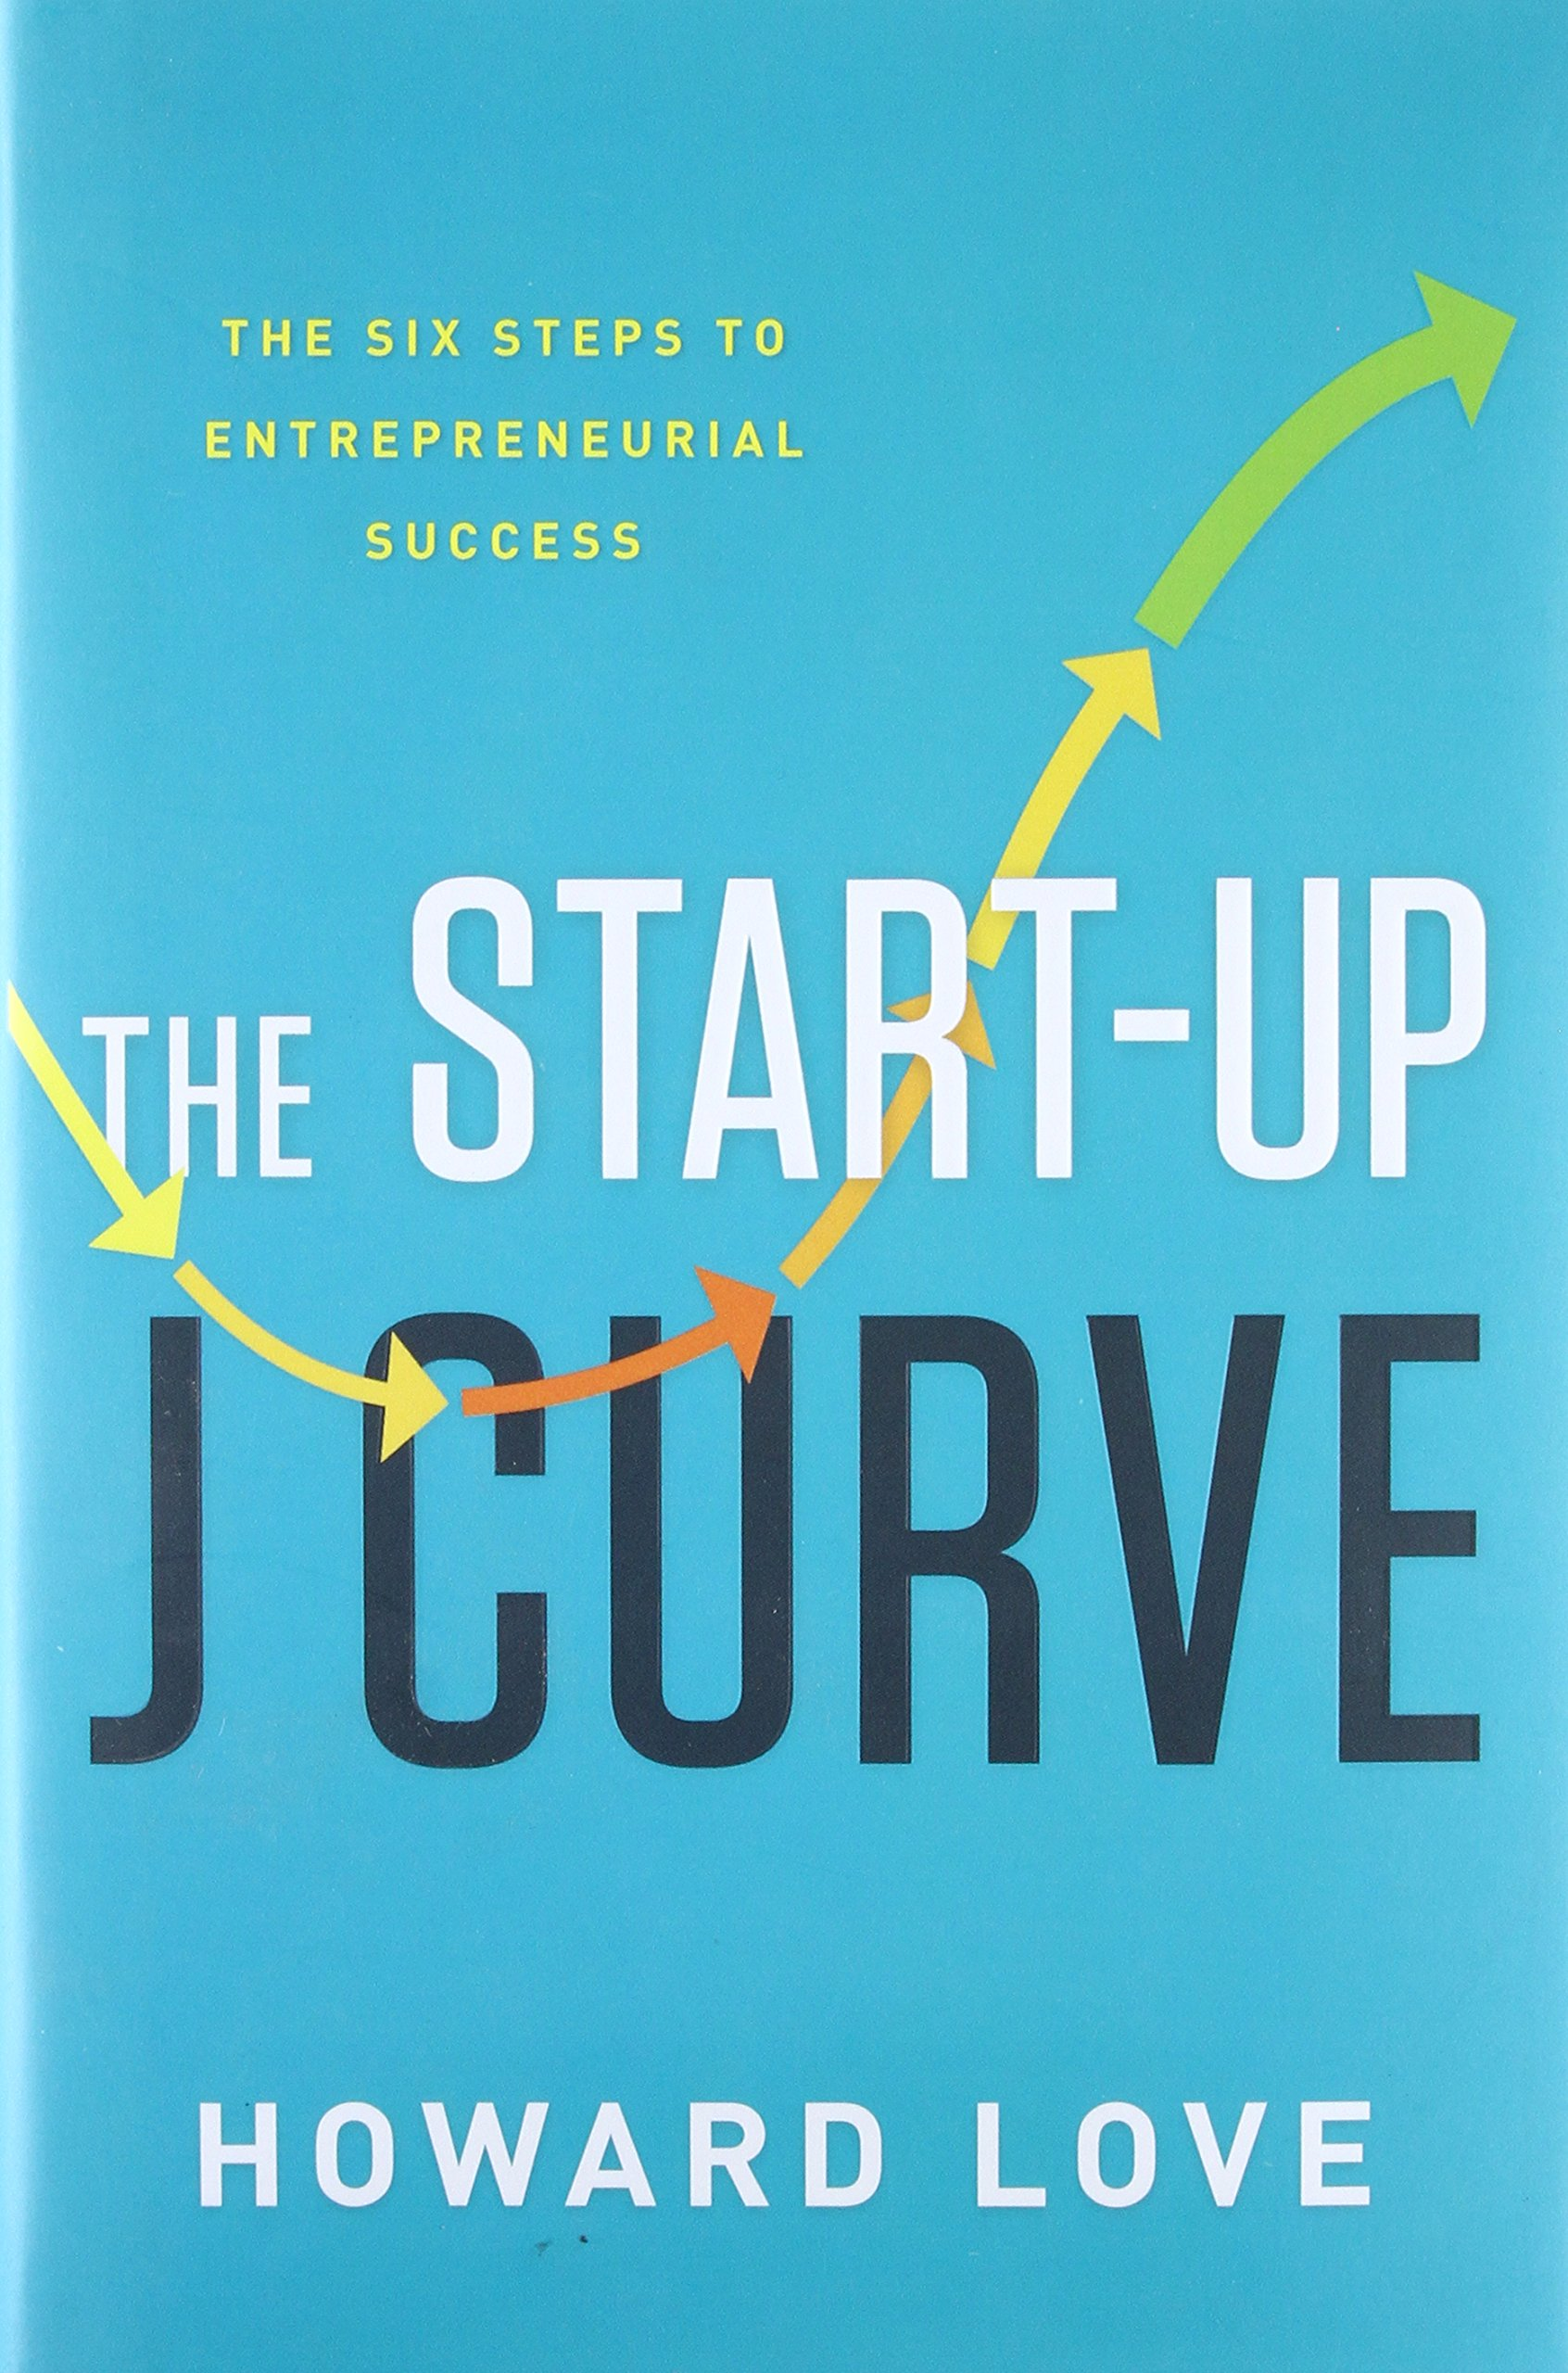 Amazon.com: The Start-Up J Curve: The Six Steps To Entrepreneurial Success  (9781626342927): Howard Love: Books